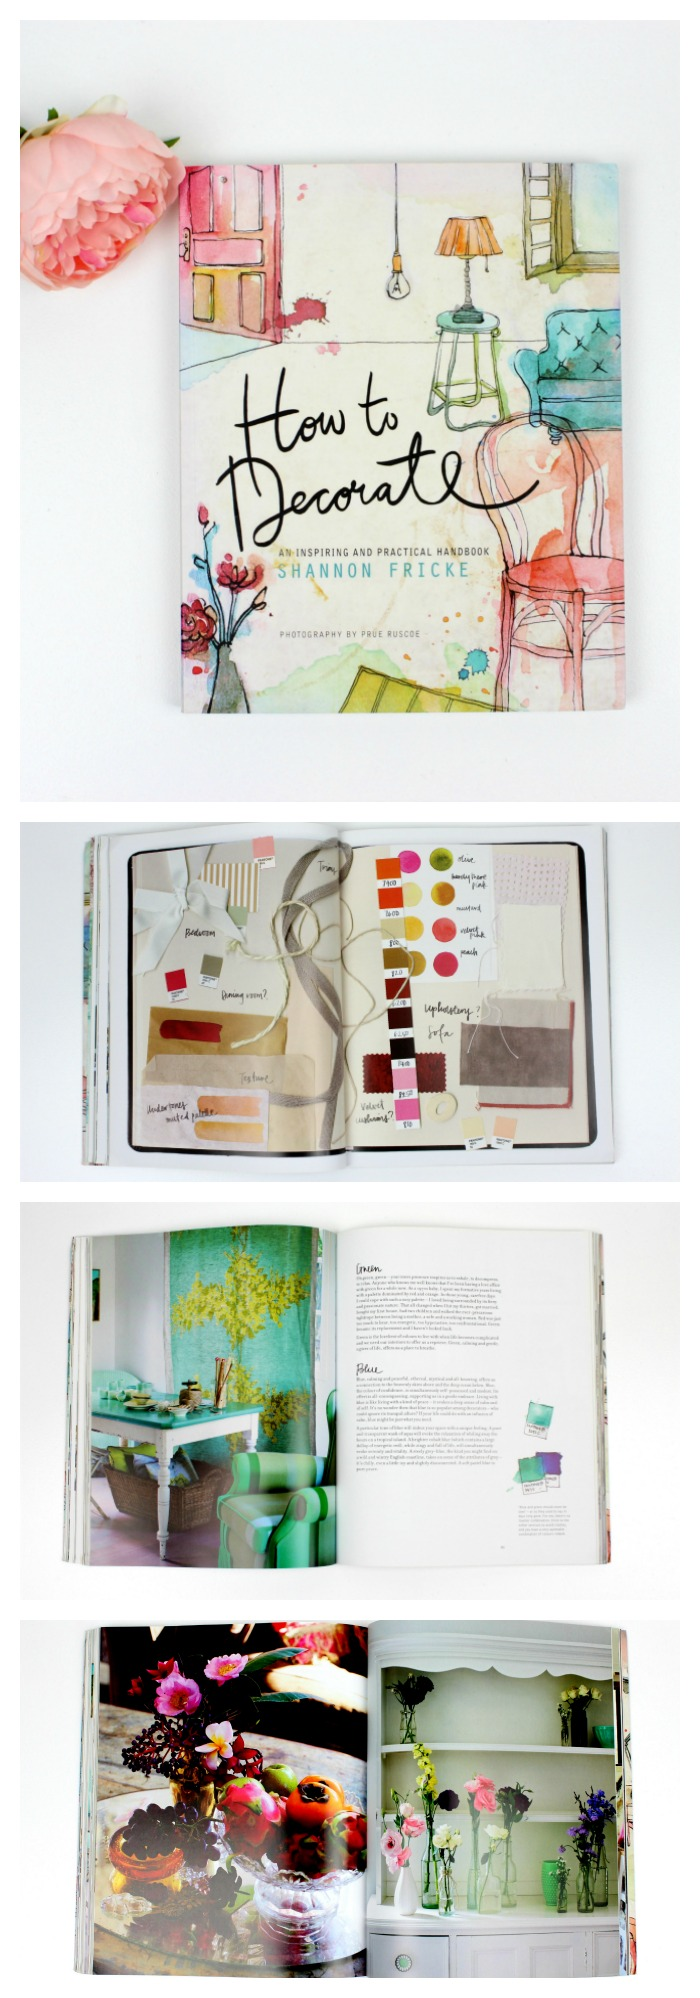 Decorating Books How to Decorate by Shannon Fricke